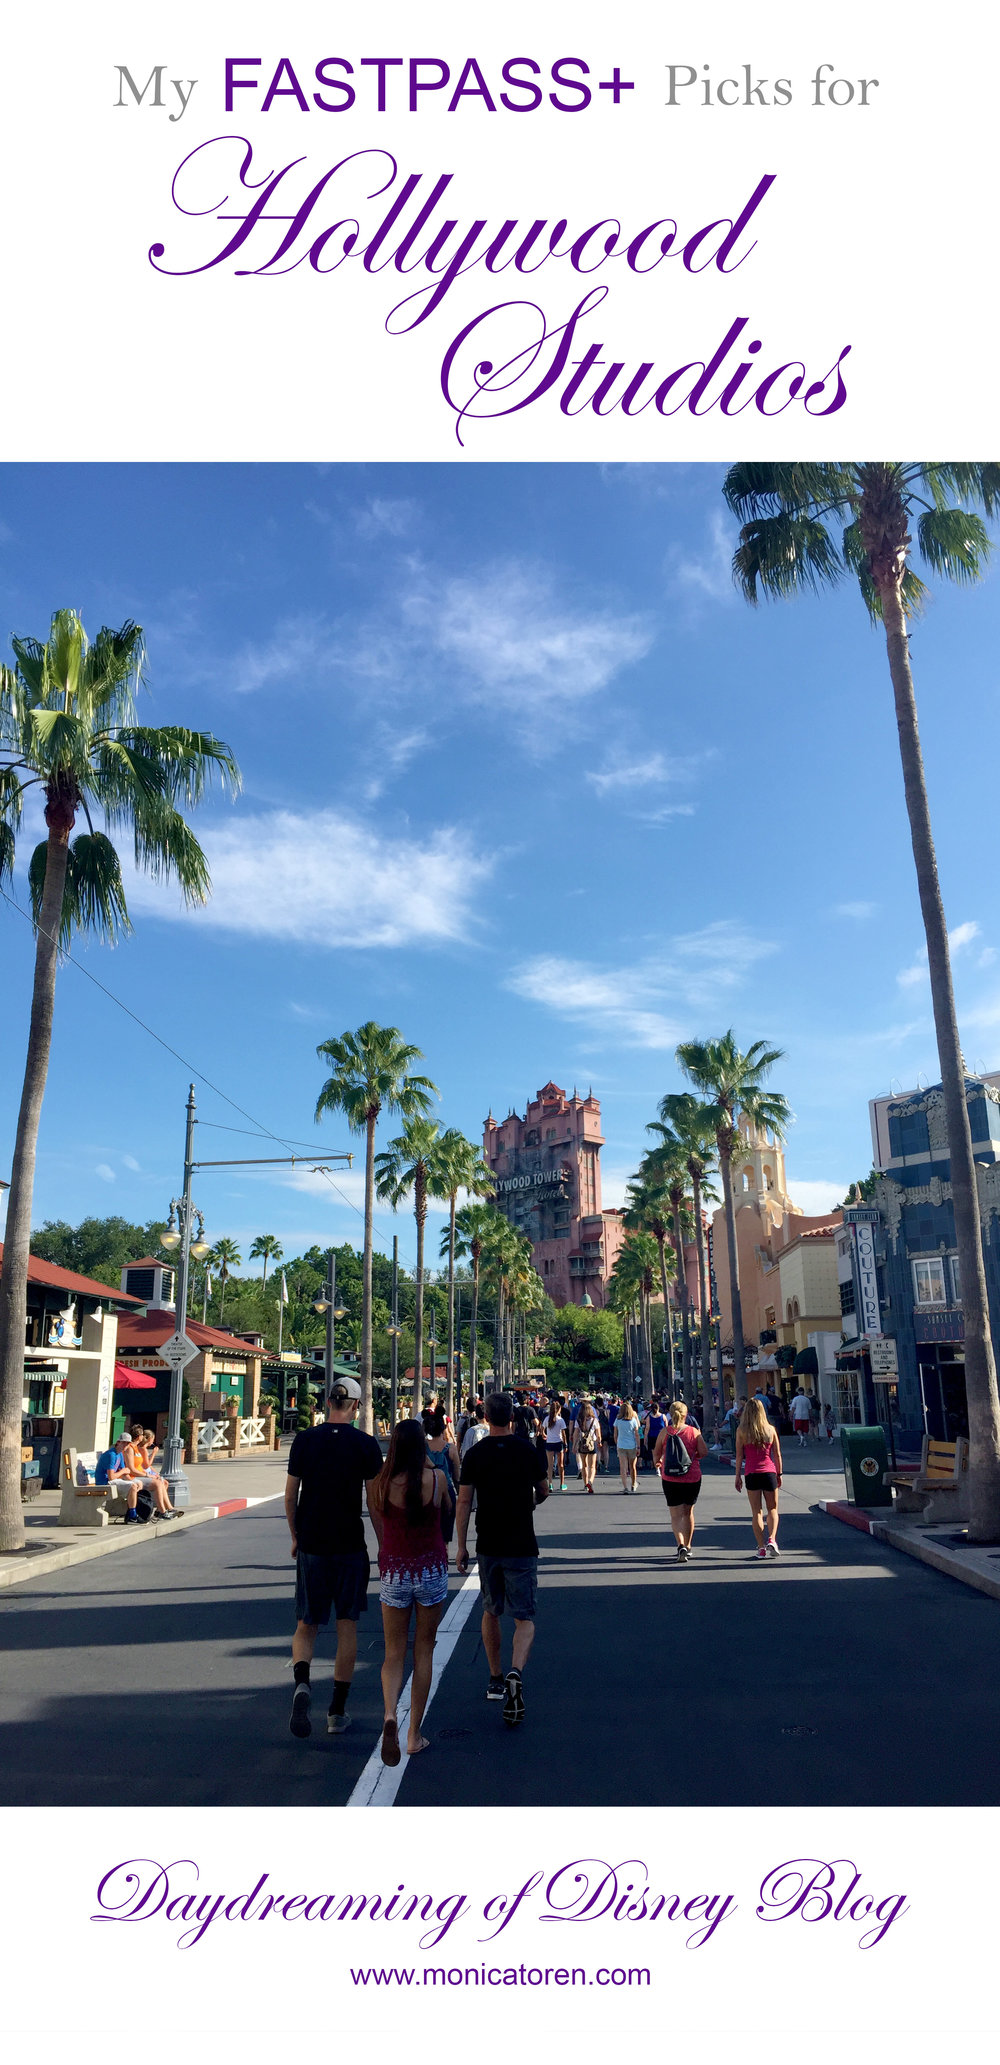 Daydreaming of Disney Blog - My Fastpass Picks for Hollywood Studios - http://www.monicatoren.com #disney #fastpass #disneyworld #disneyworldplanning